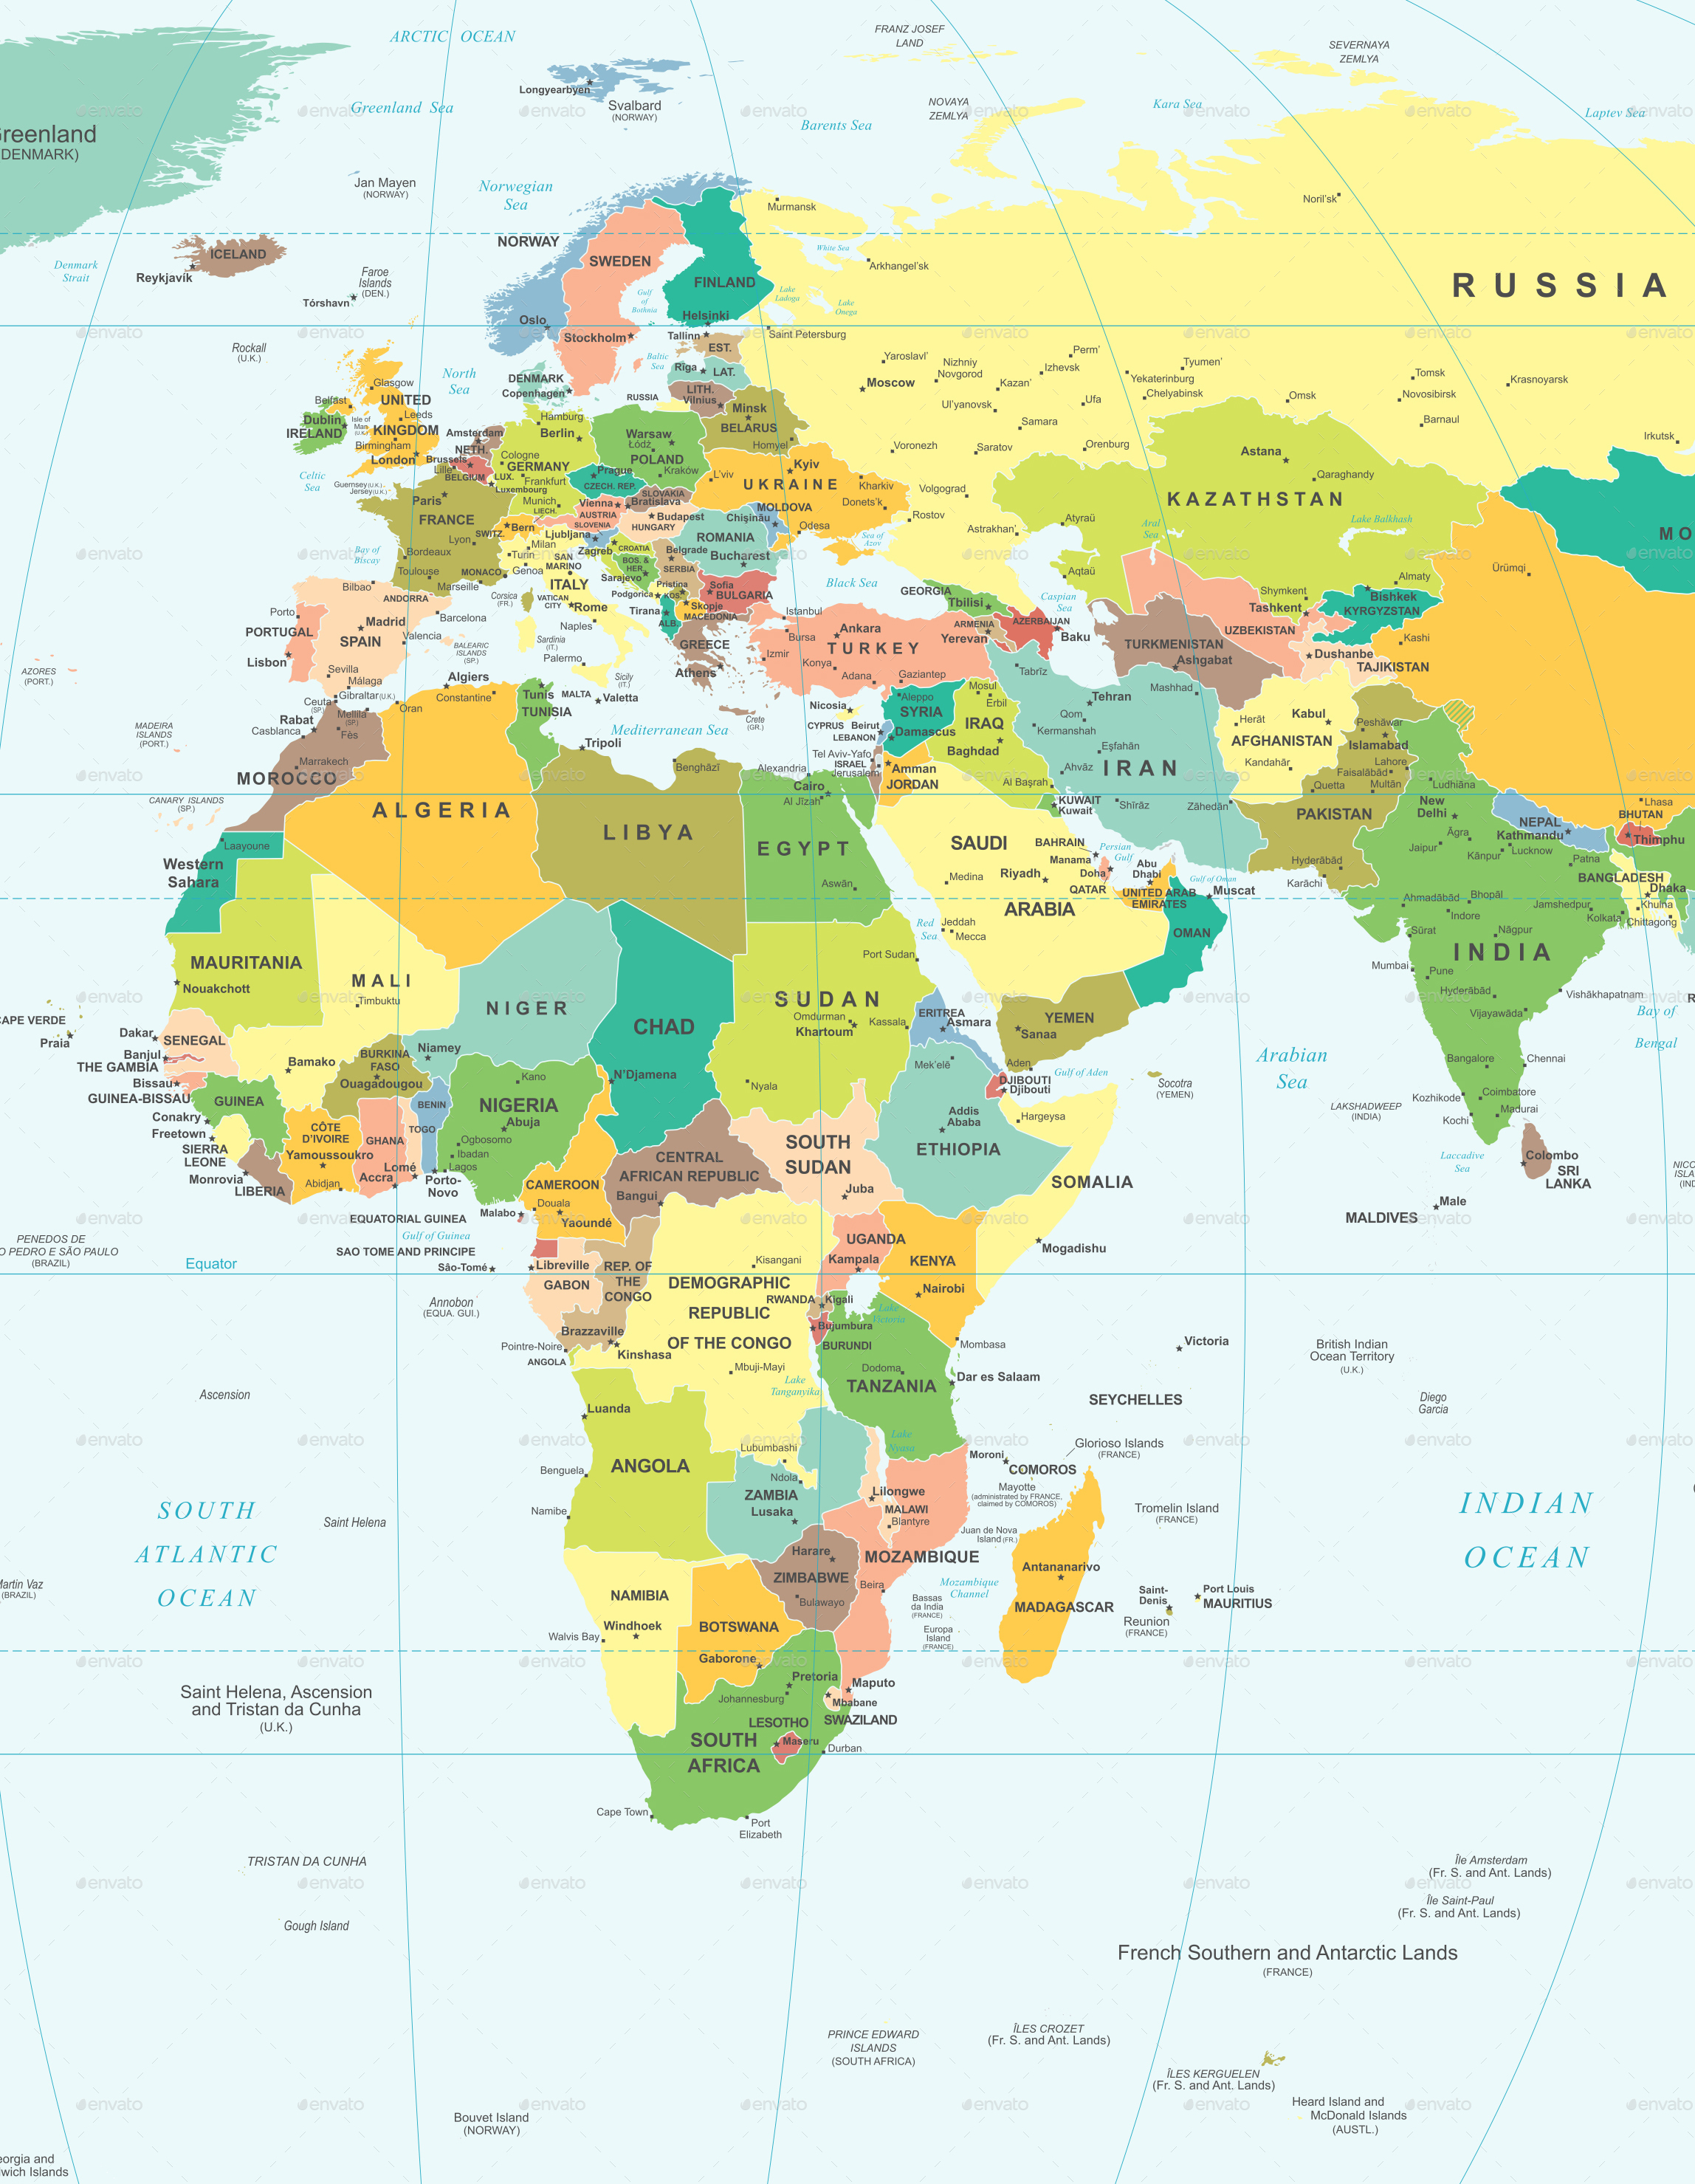 World map illustration color and grid square by dikobrazik 0278 world map r color and grid square q10g gumiabroncs Choice Image